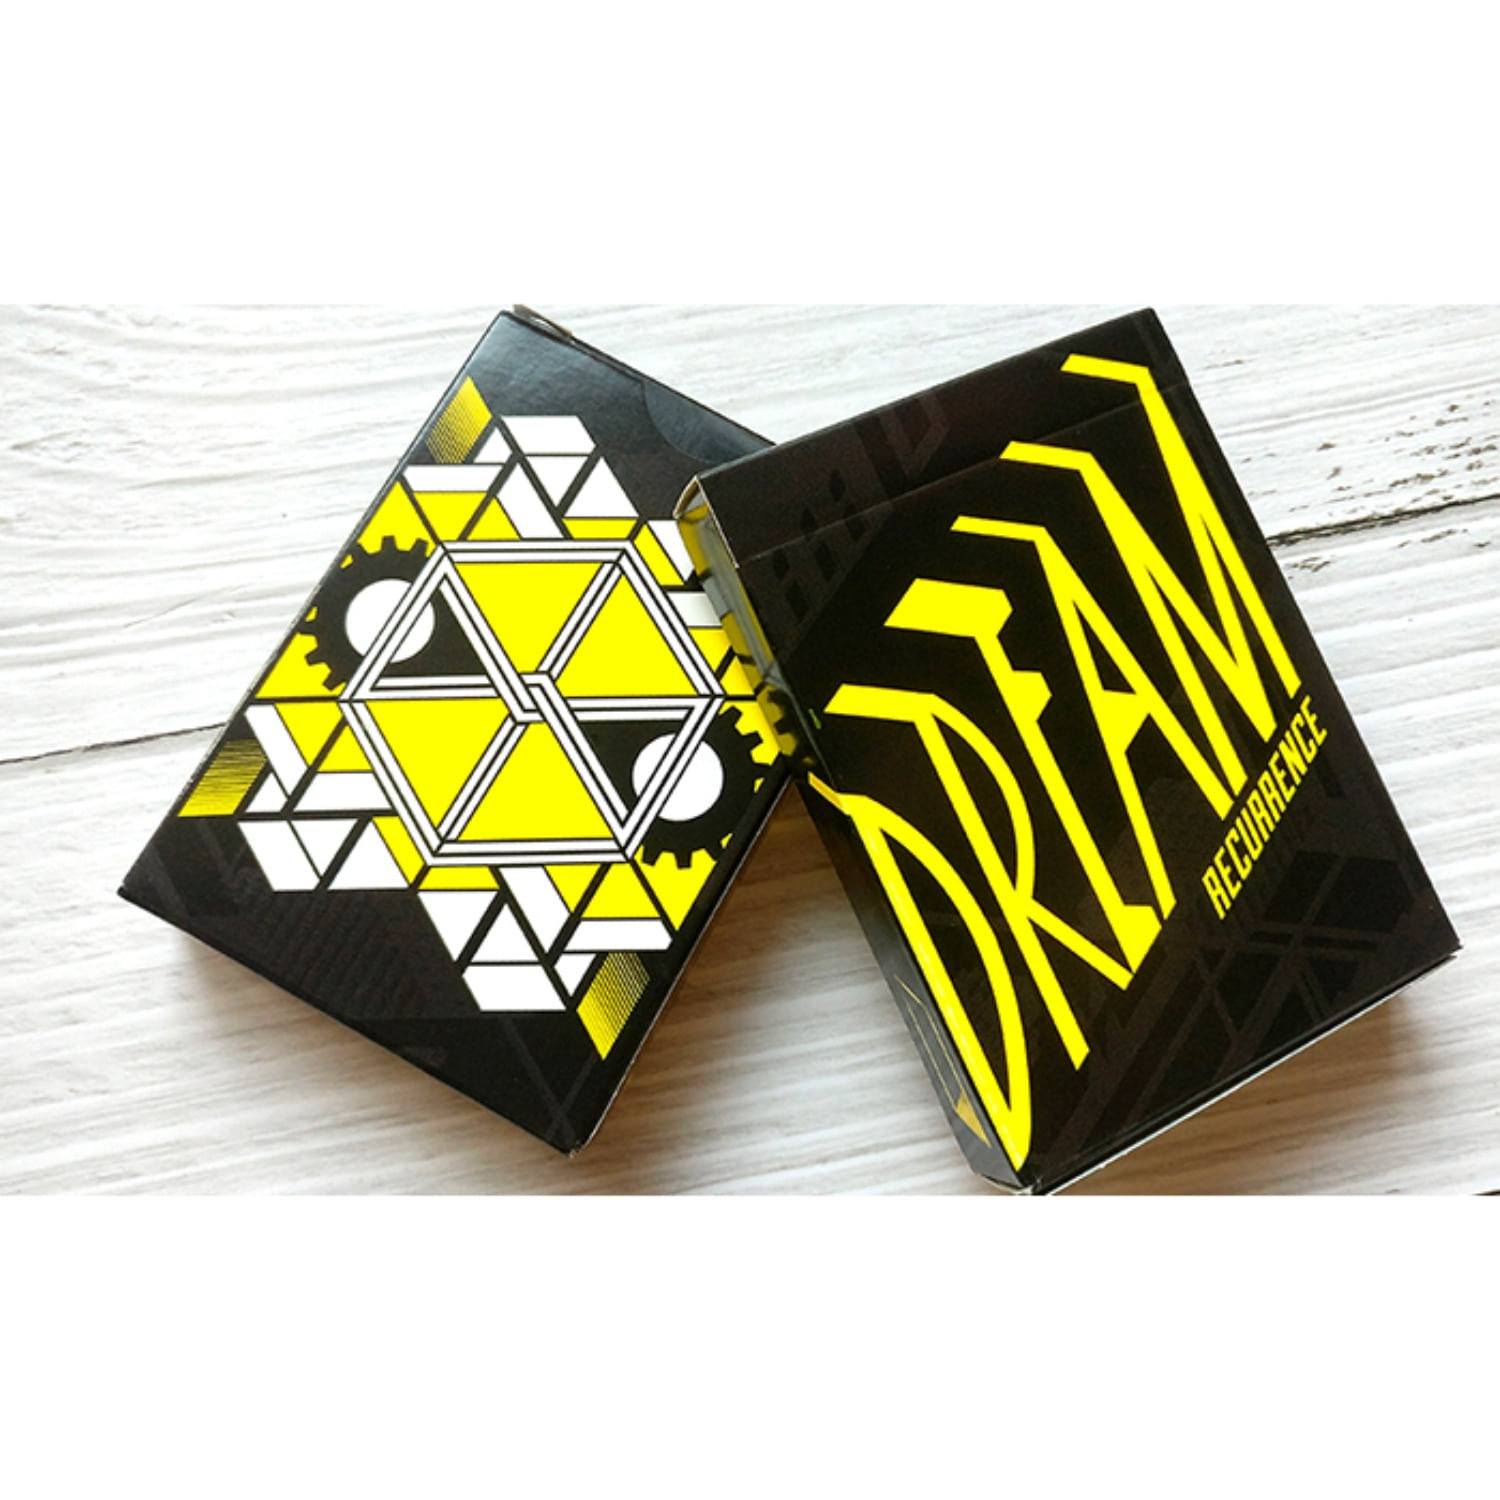 [드림리큐어런스 이그쥬버런스]Dream Recurrence Exuberance Playing Cards (Standard)